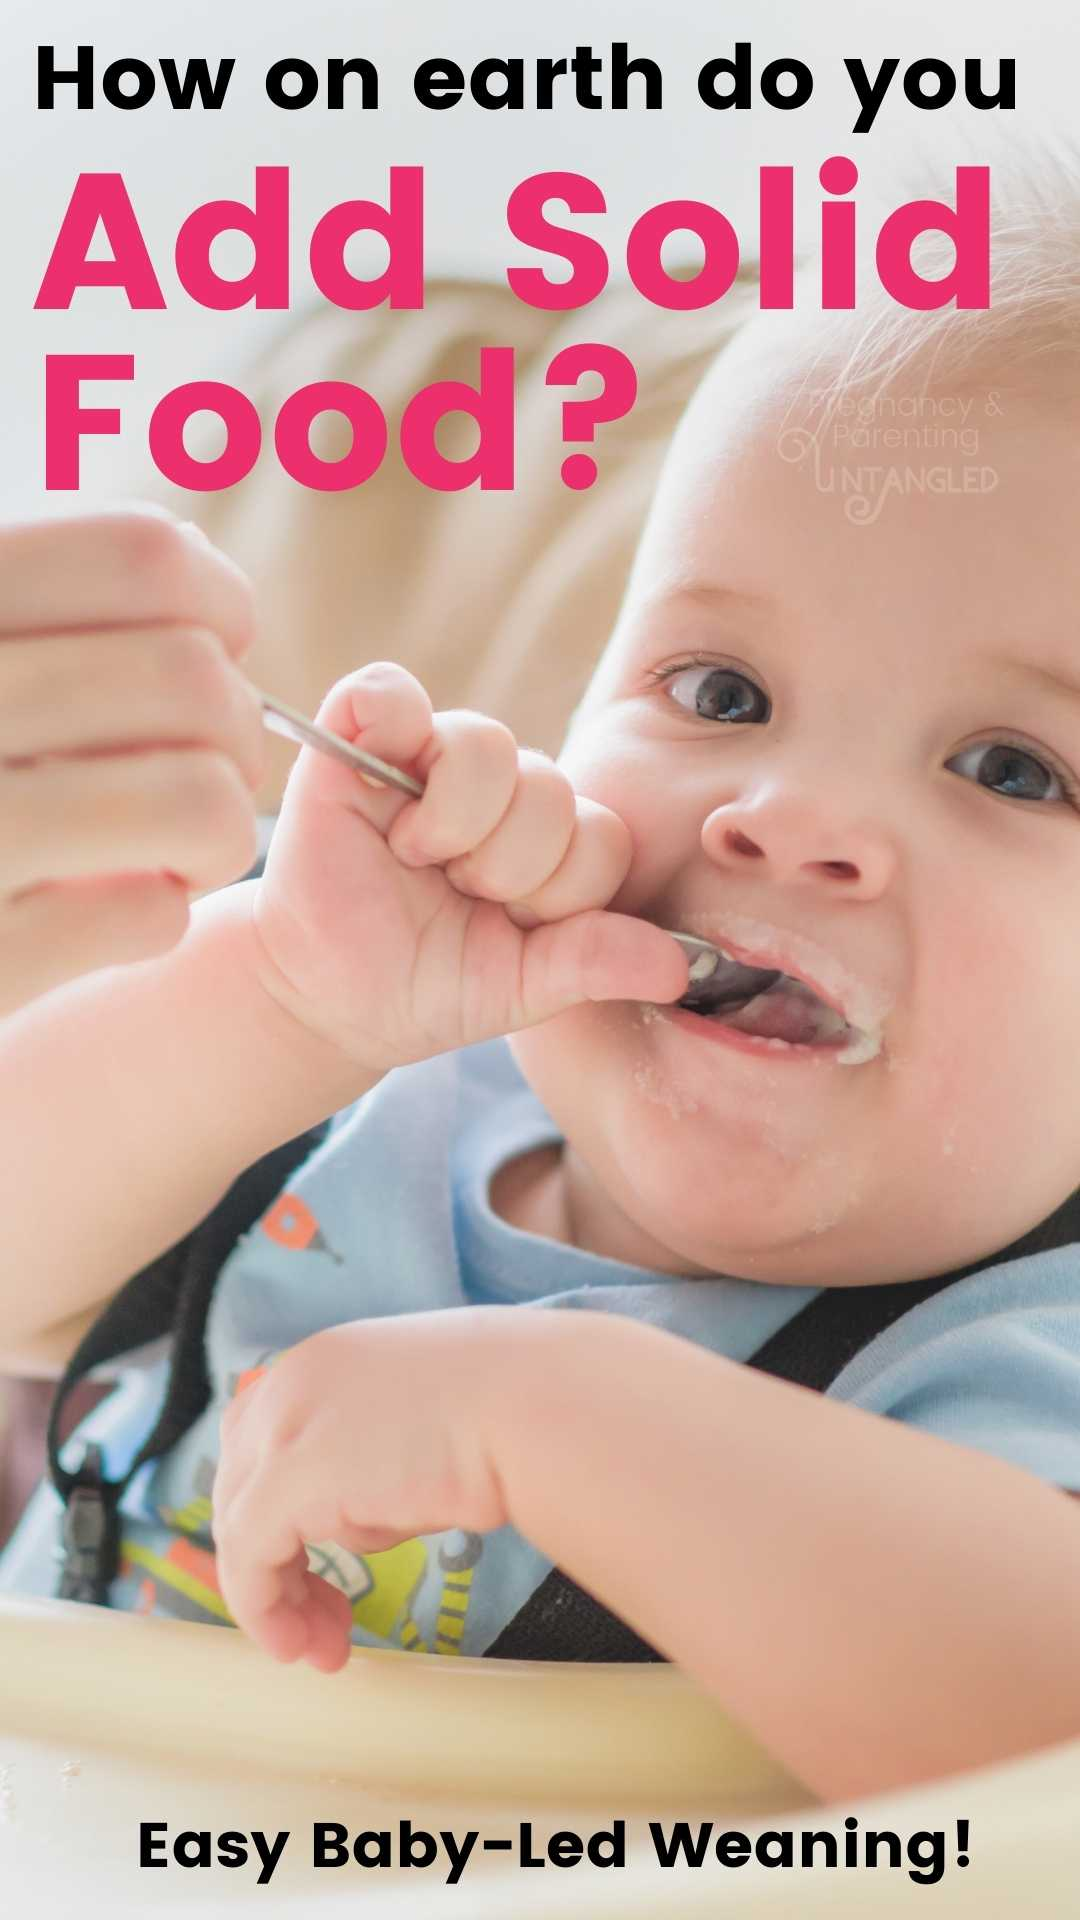 How do you add other foods to baby while still breastfeeding for baby as well. Let's talk about how to do that safely with Samantha Radford. via @pullingcurls